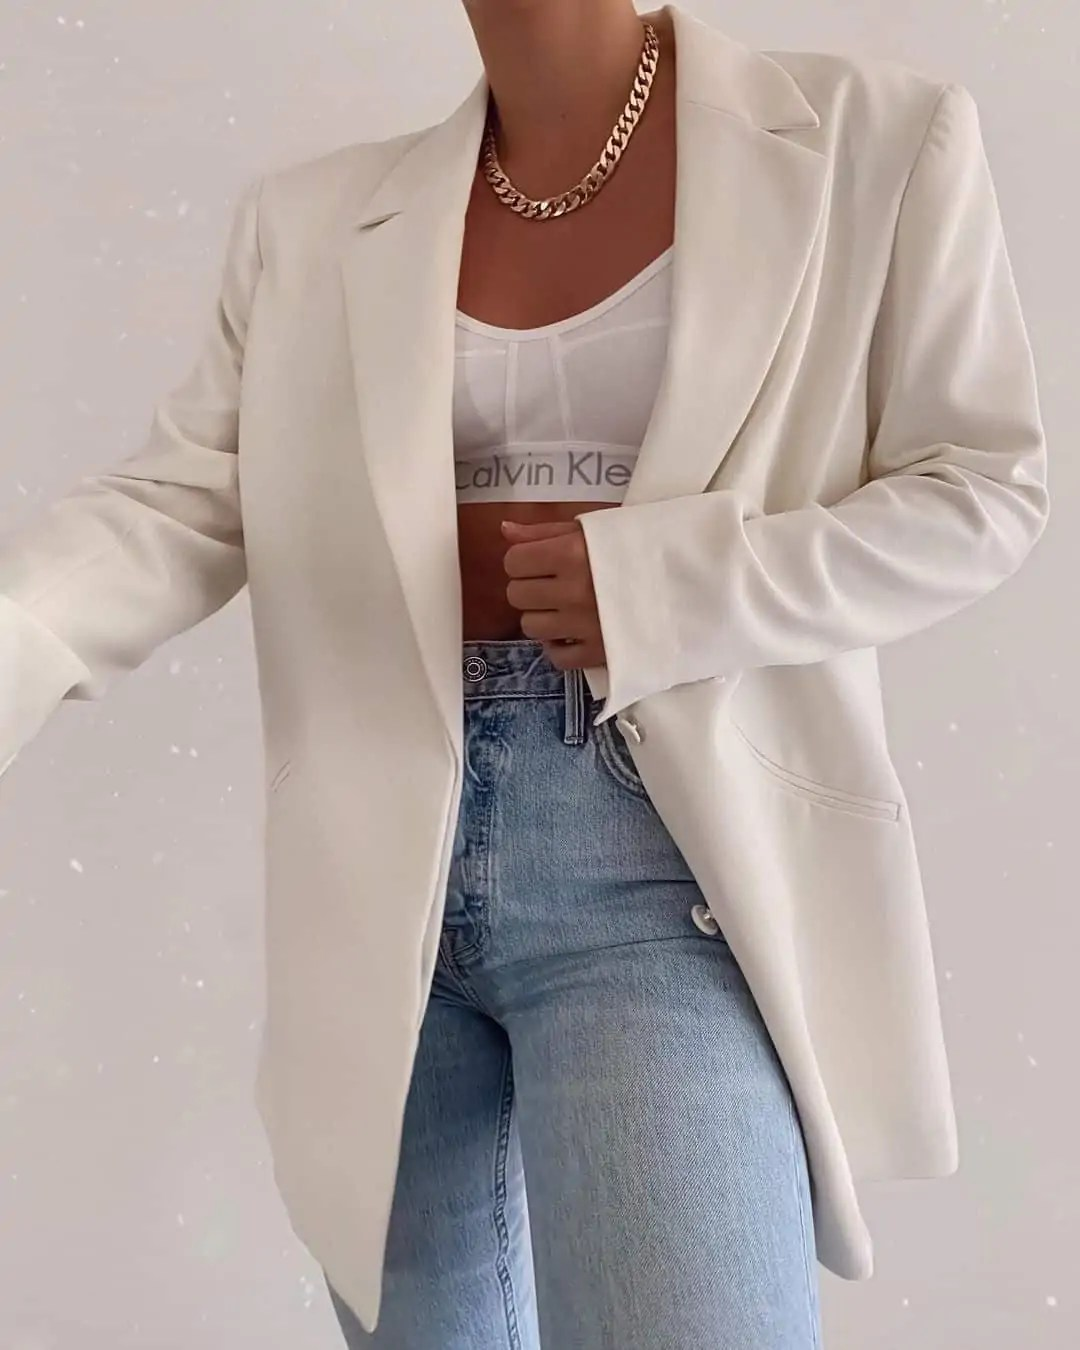 100+ Outfits to Inspire your next shopping haul 87